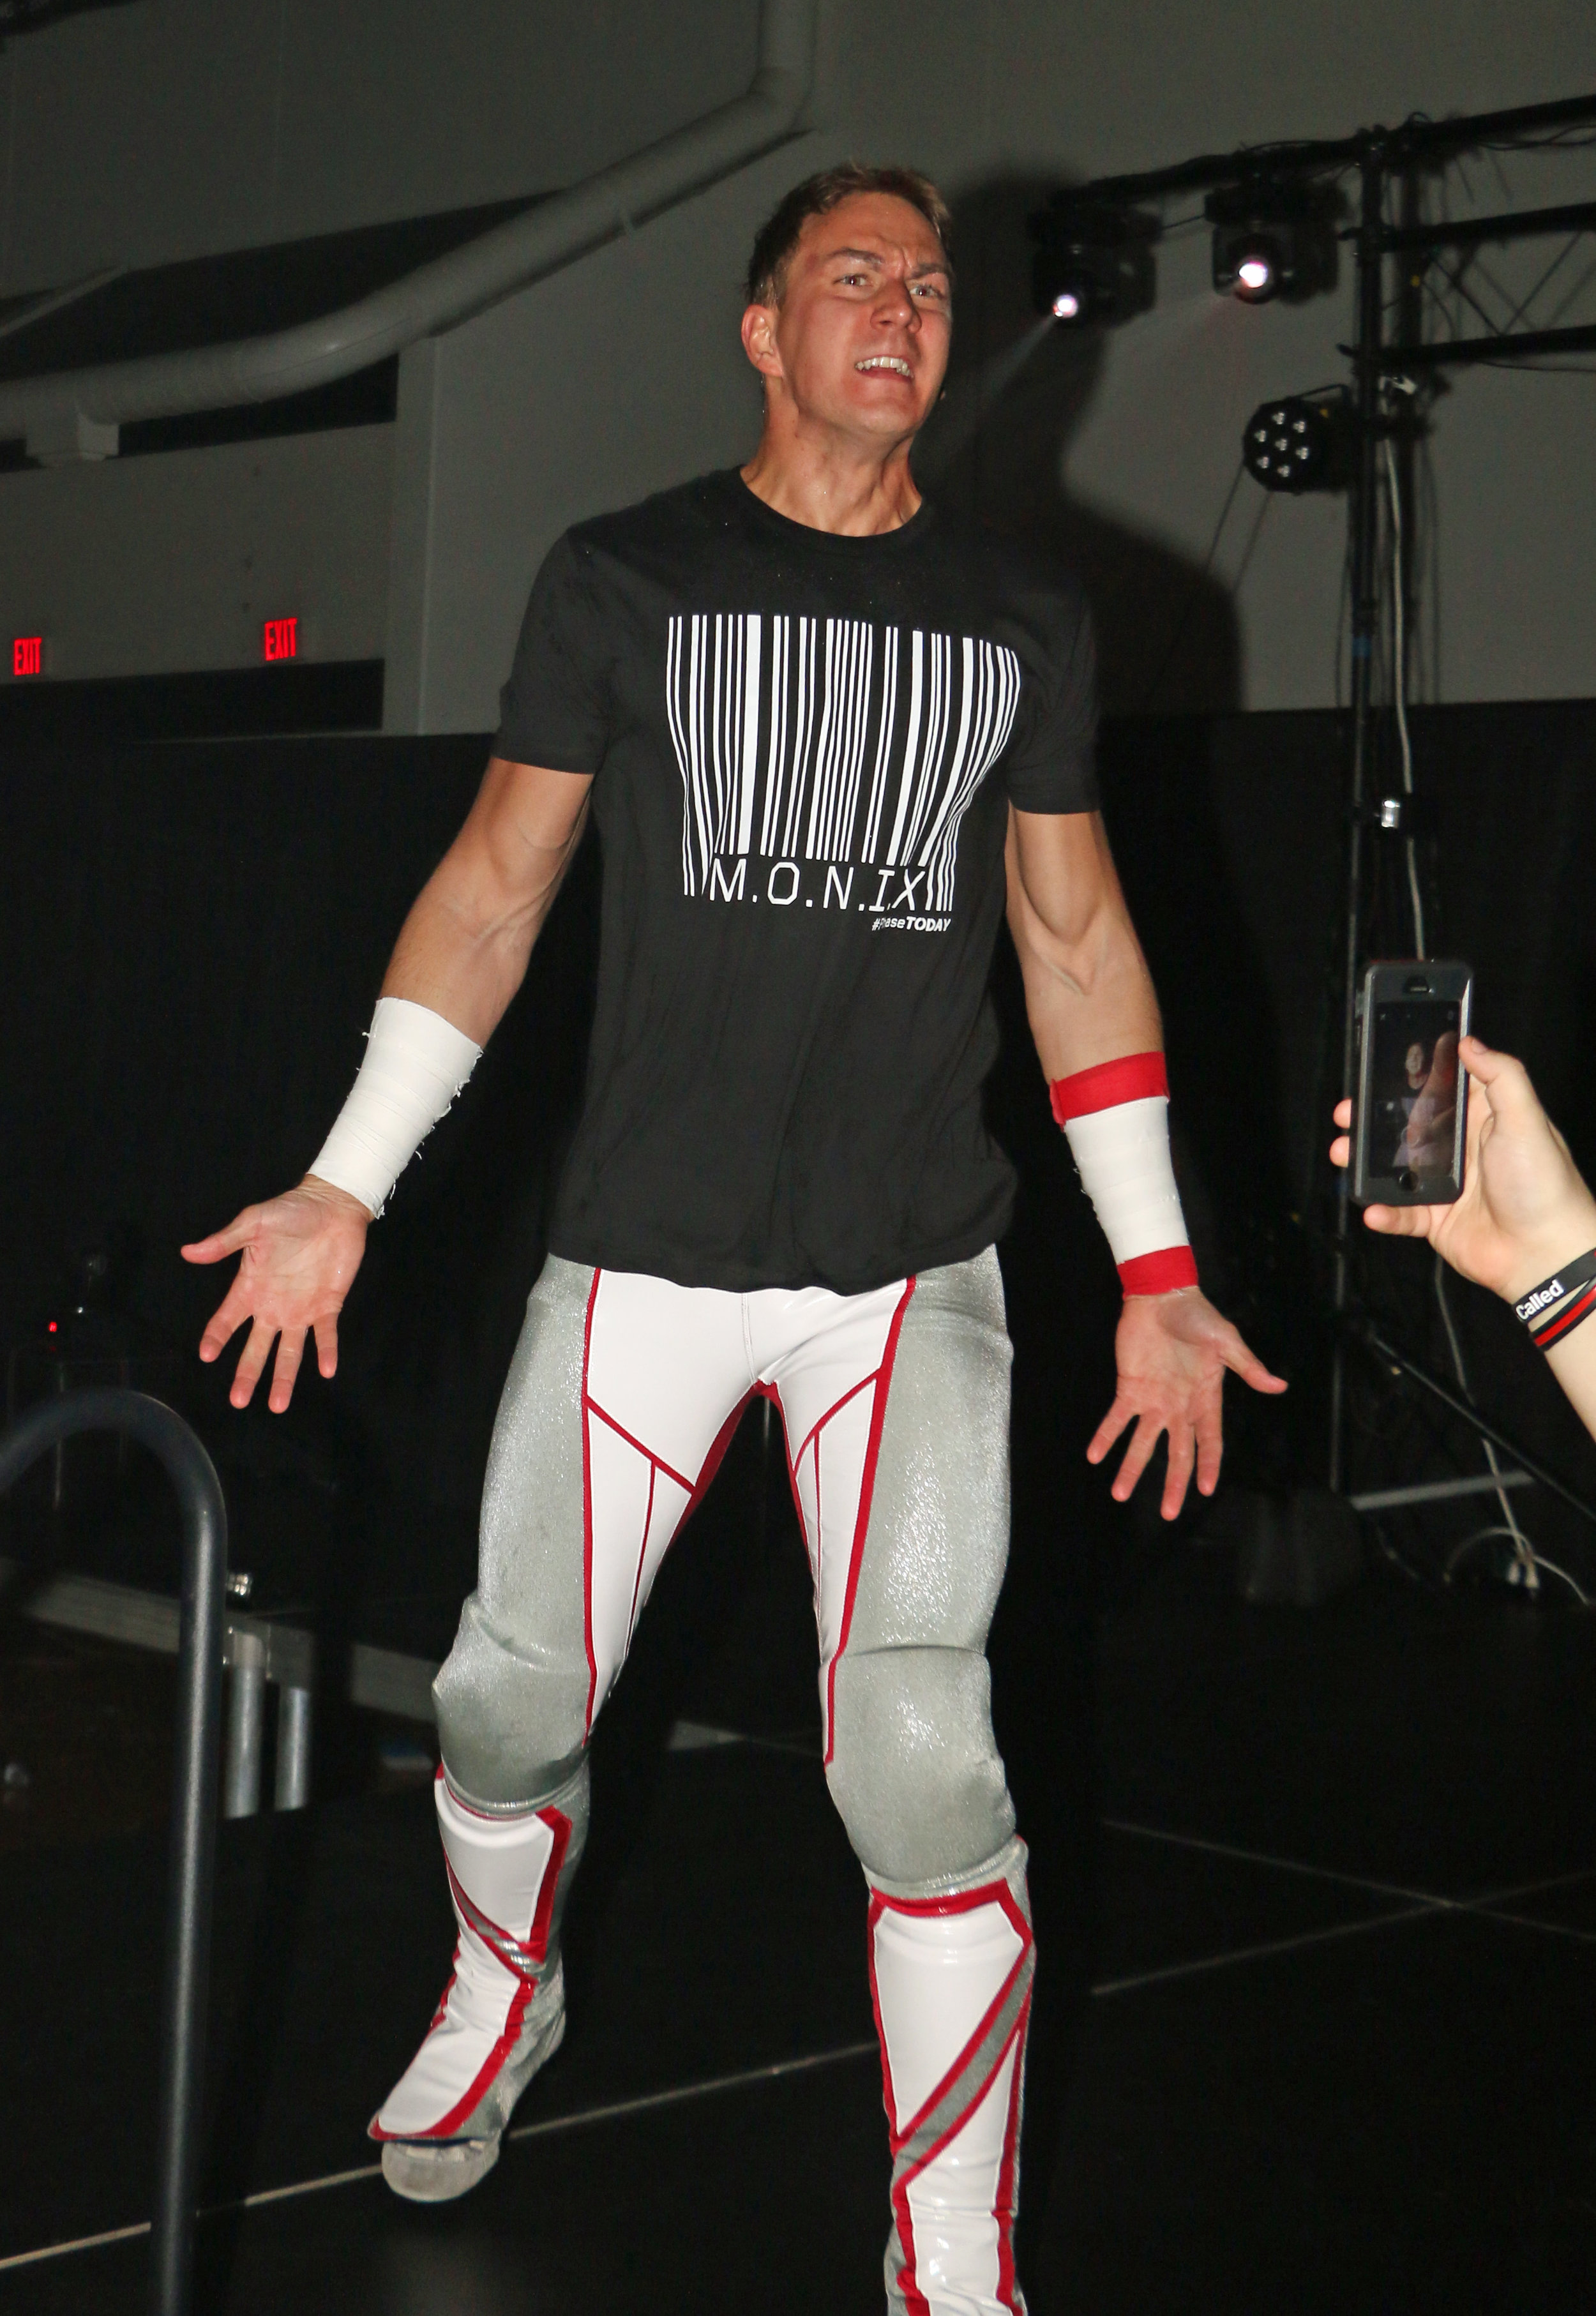 Pat Monix enters the arena at Warrior Wrestling 3 on Juanury 5, 2019. Monix, a five-year veteran in the wrestling business, was trained by Bryce Benjamin and influenced by wrestlers like Shawn Michaels, CM Punk, Ali and DJZ among others.  (Photo by Mike Pankow)